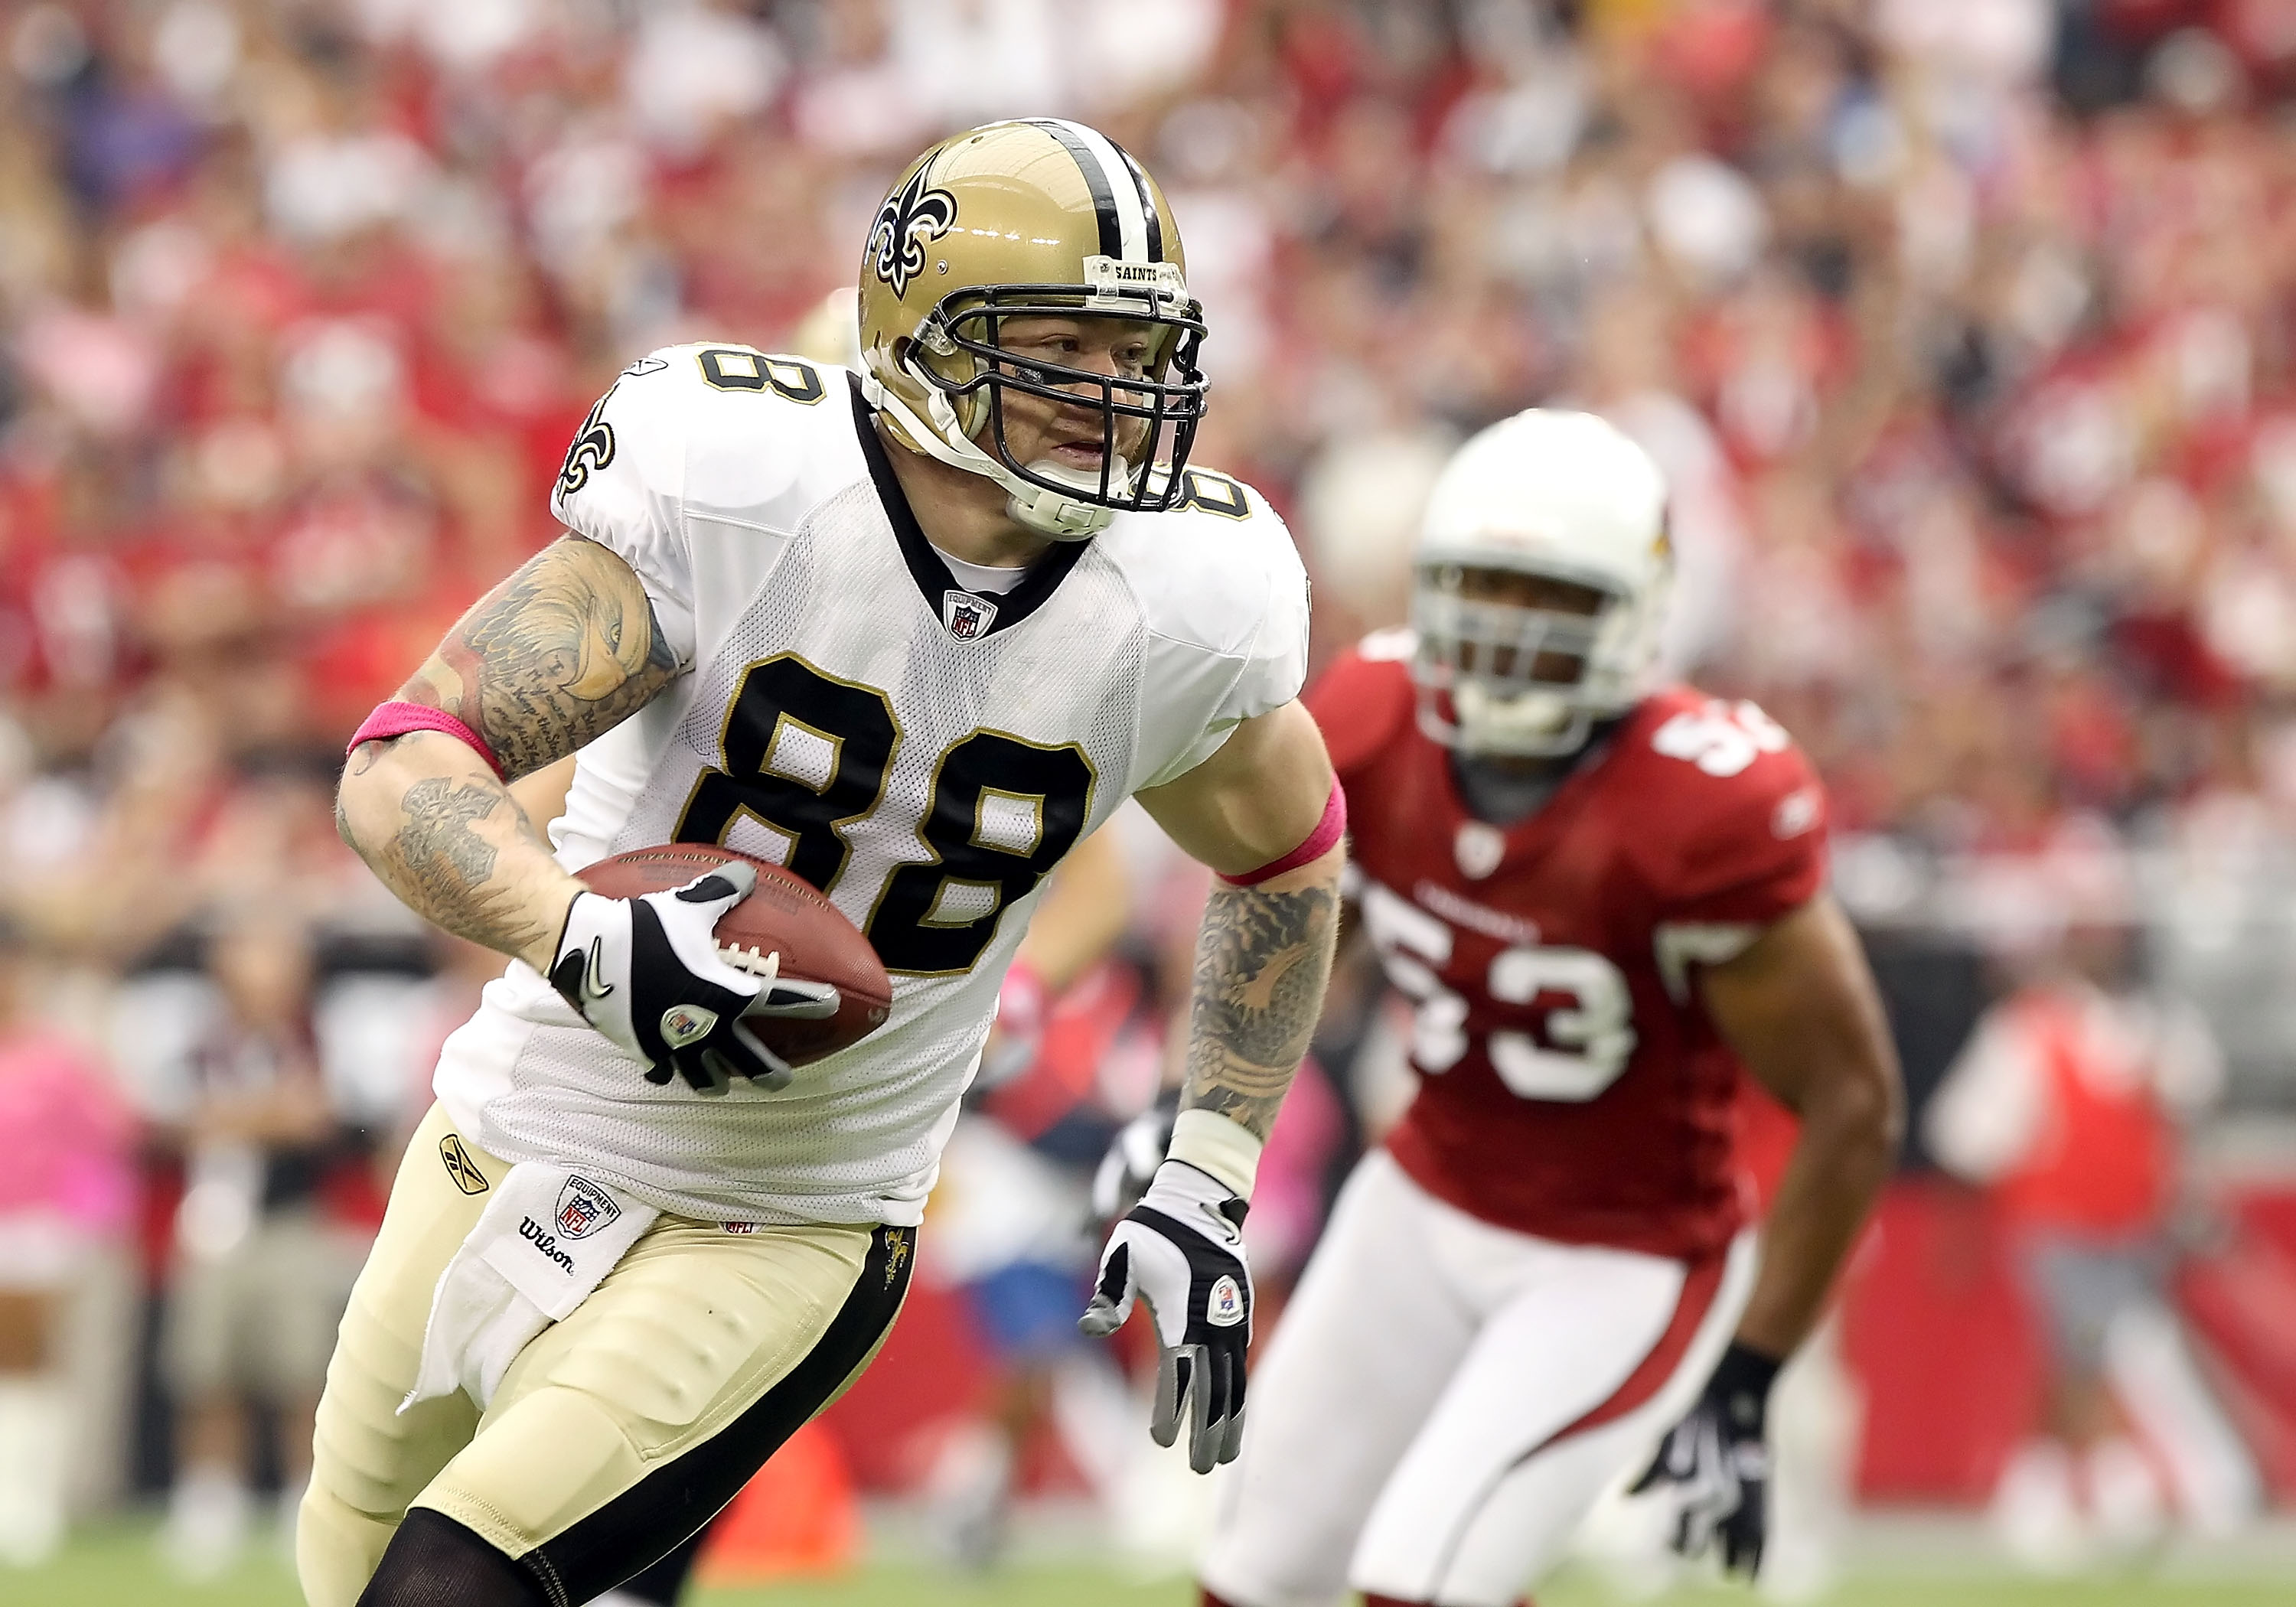 GLENDALE, AZ - OCTOBER 10:  Tight end Jeremy Shockey #88 of the New Orleans Saints runs with the football for a 11 yard reception against the Arizona Cardinals during the first quarter of the NFL game at the University of Phoenix Stadium on October 10, 20